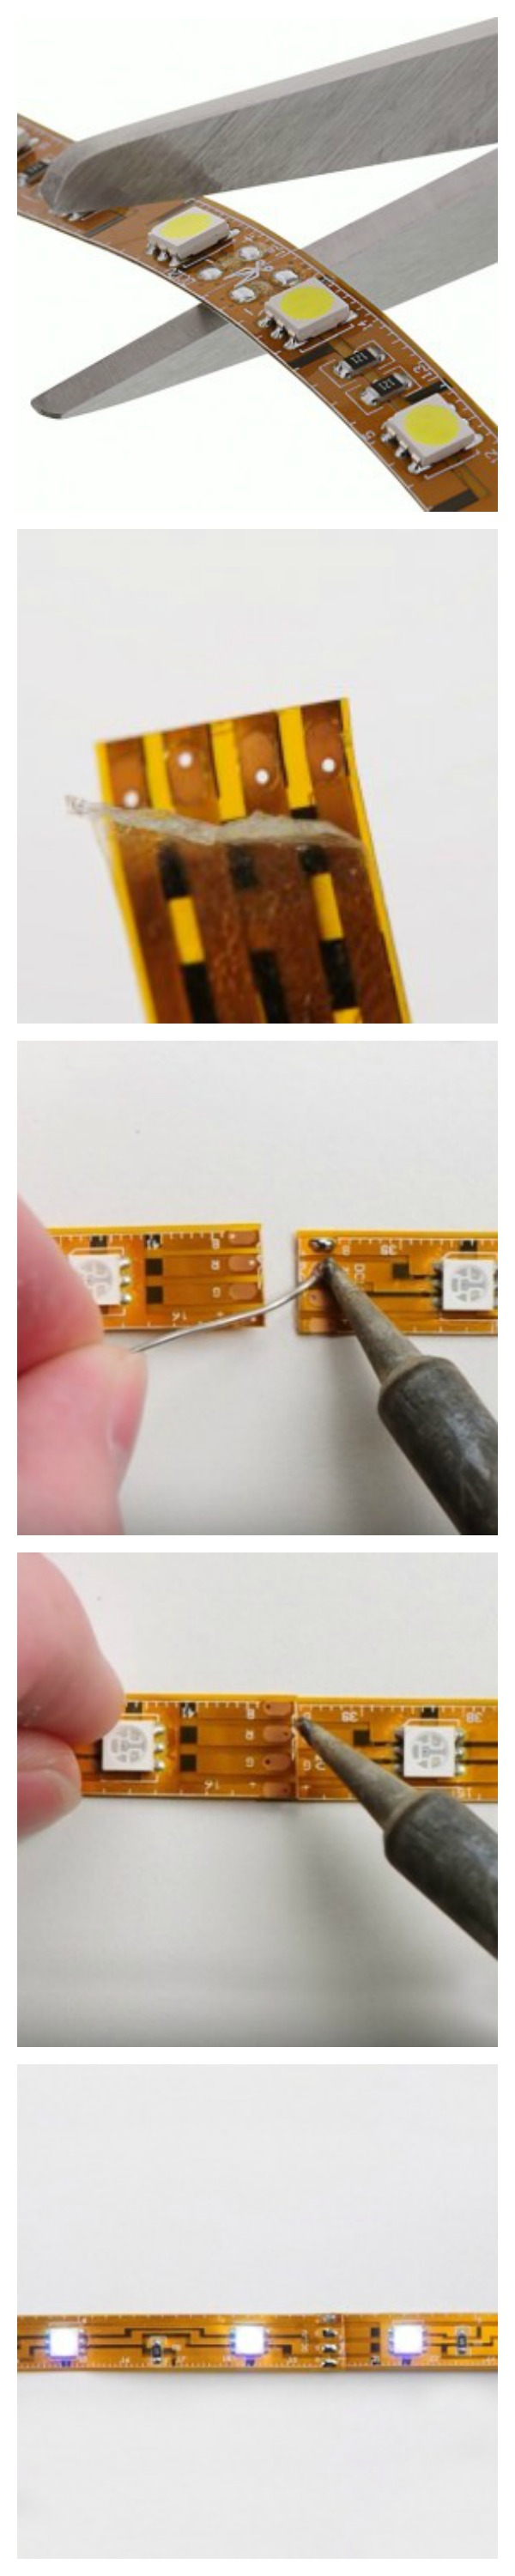 How to soldering led strip lights regardless of bends twists how to soldering led strip lights regardless of bends twists or turns led light strips can be modified to fit any application aloadofball Choice Image